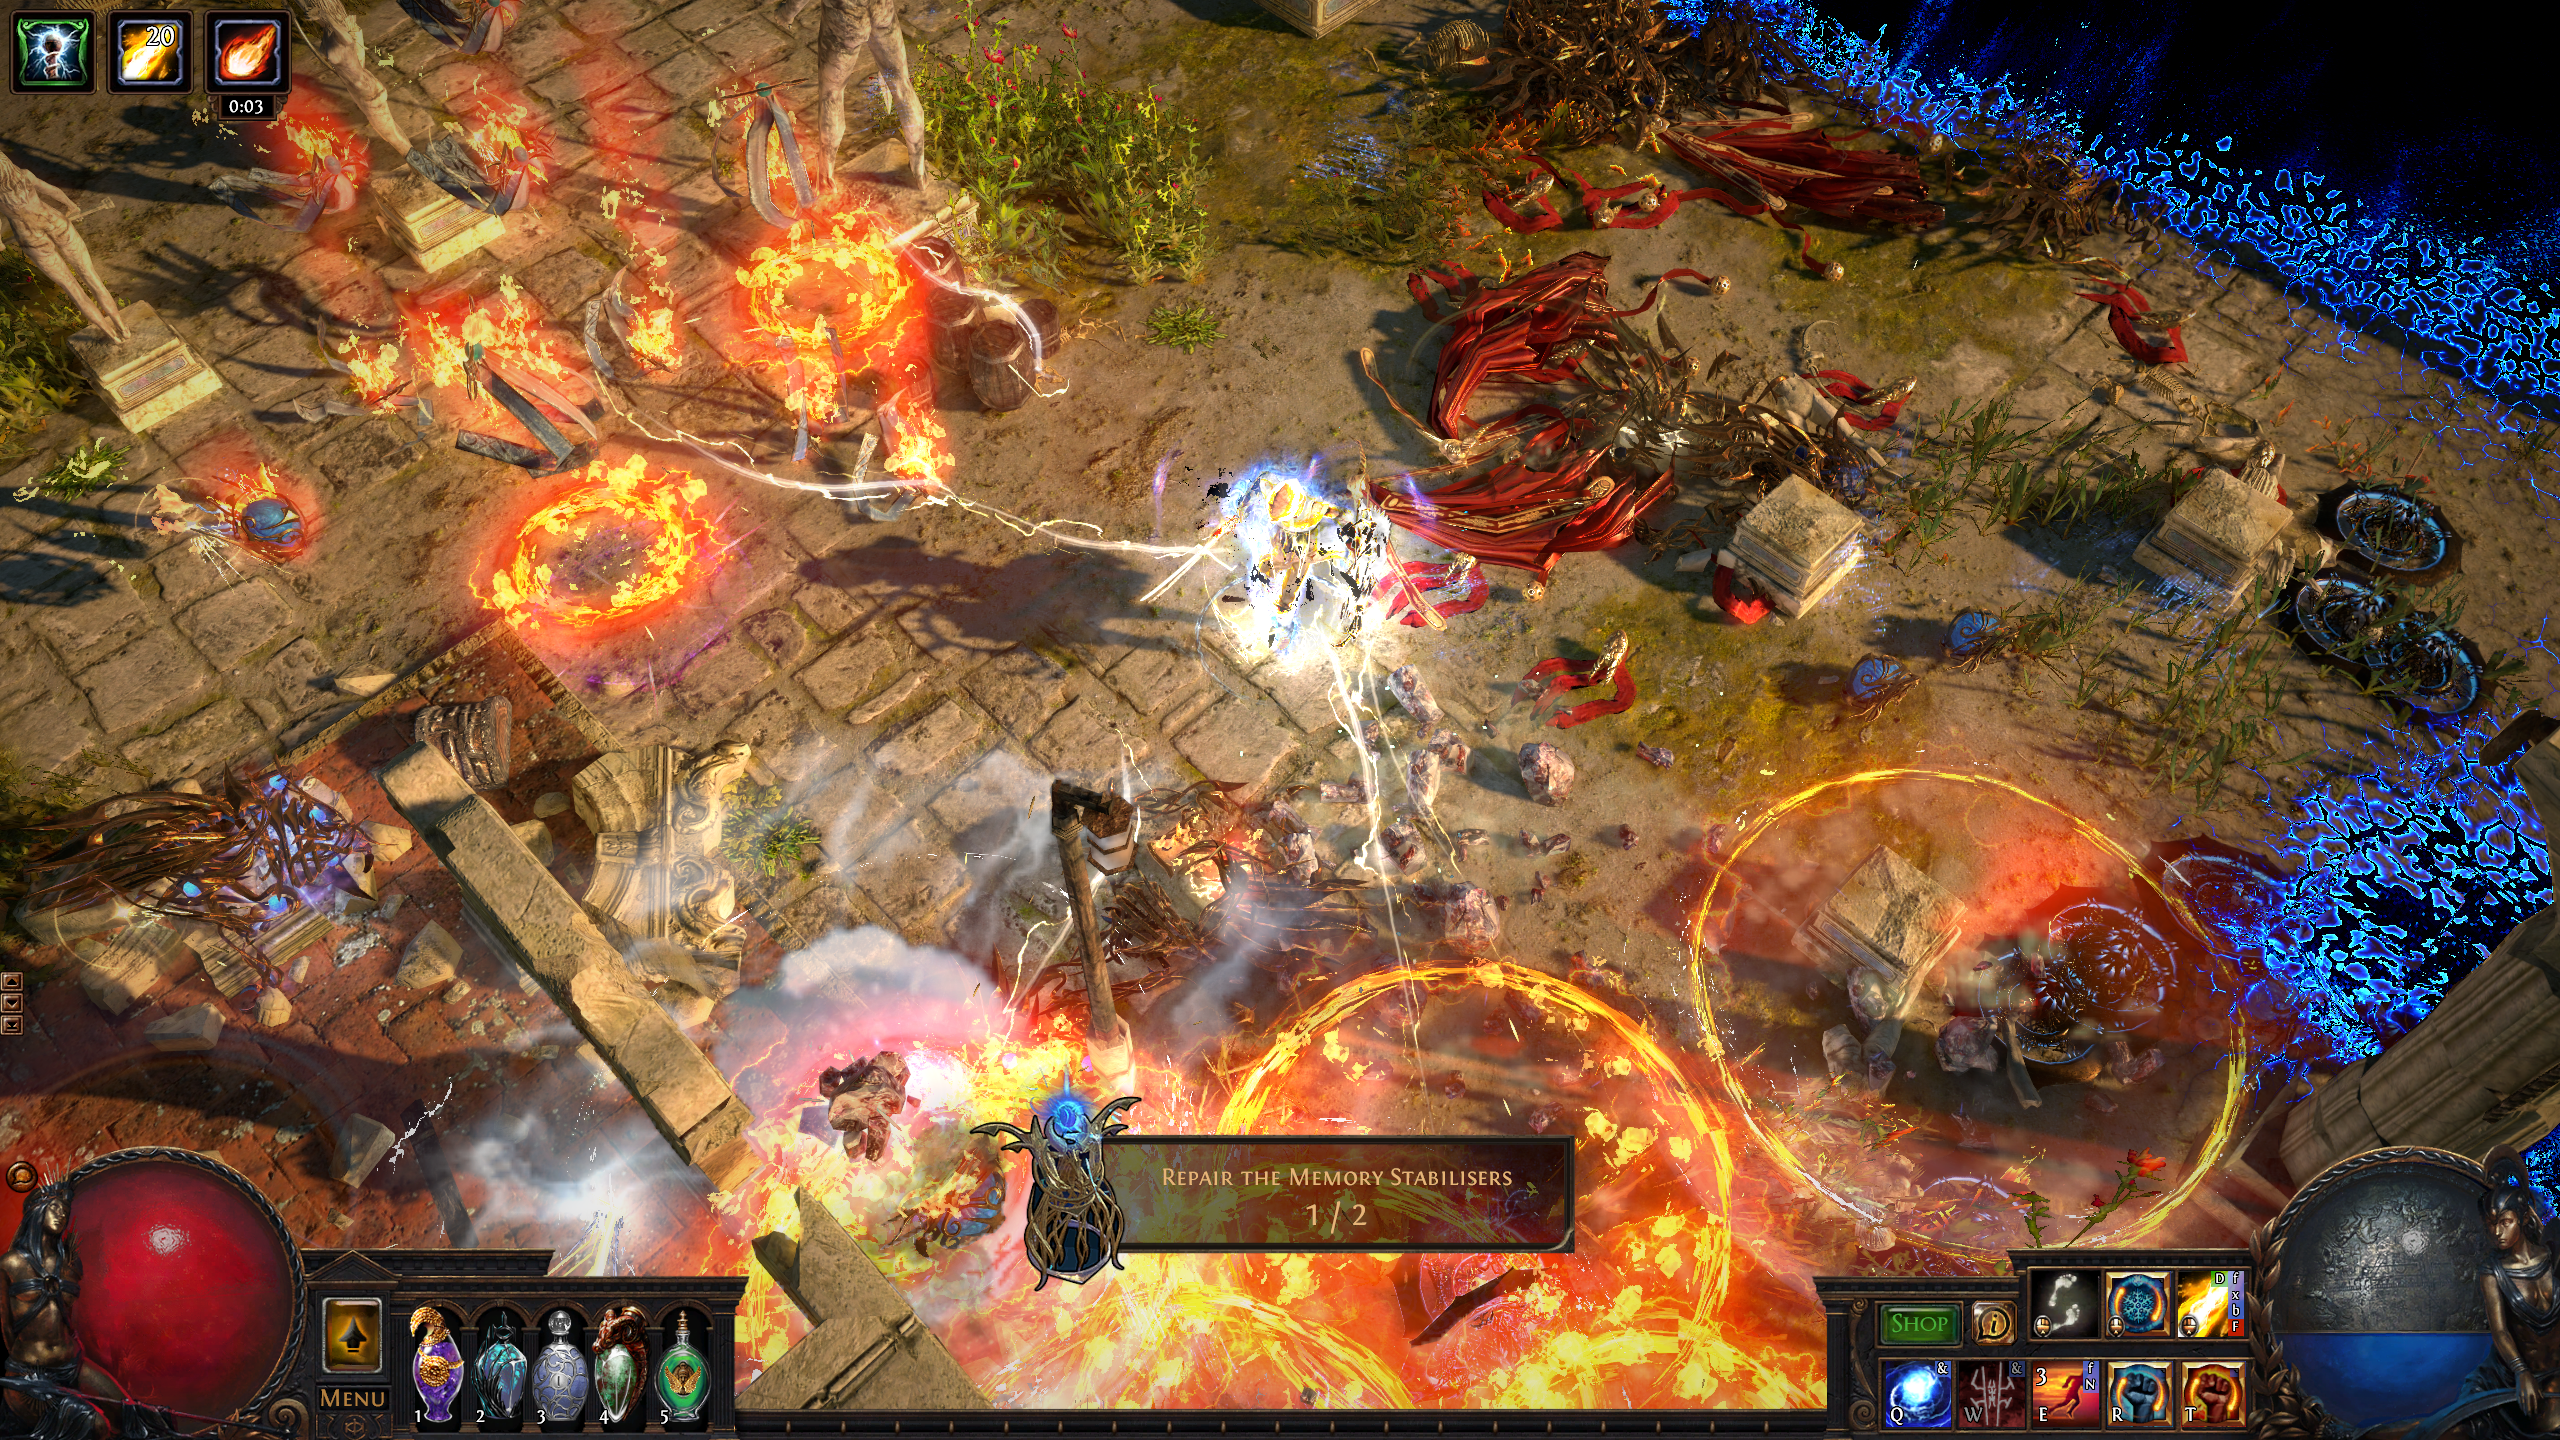 Path of Exile (Grind Gear Games / Tencent)